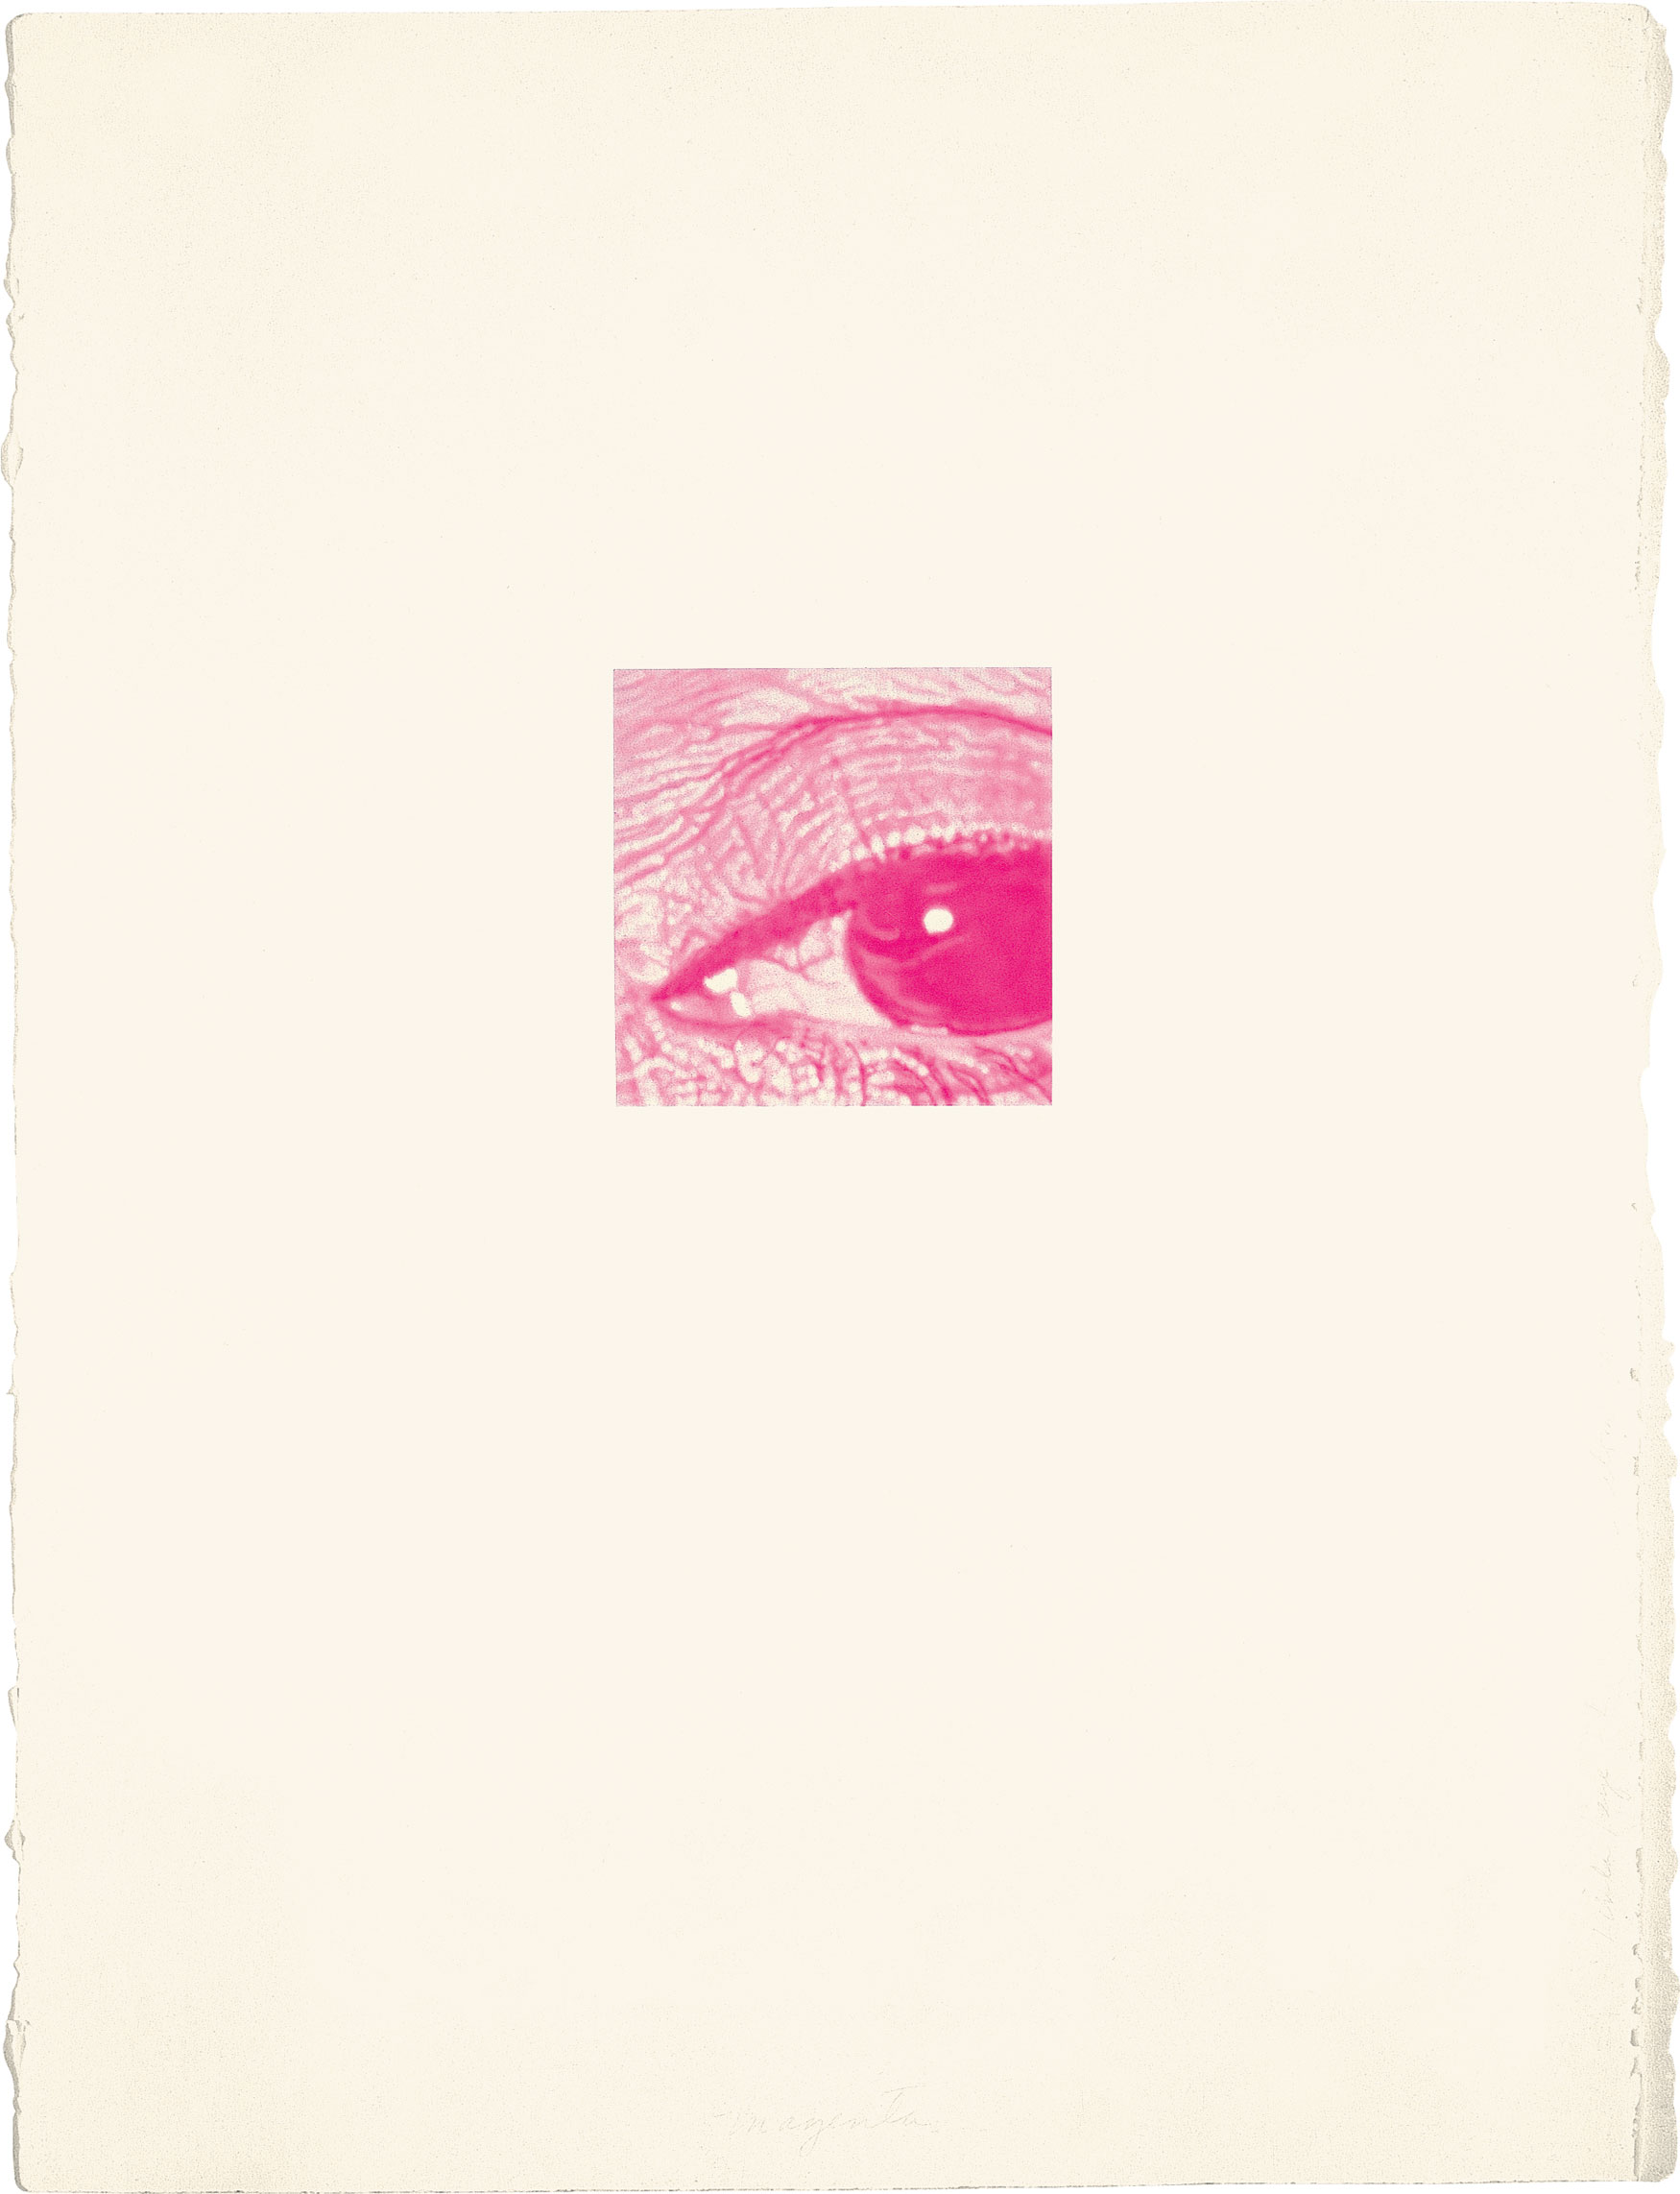 'Linda/Eye Series', Magenta; watercolor, 1977